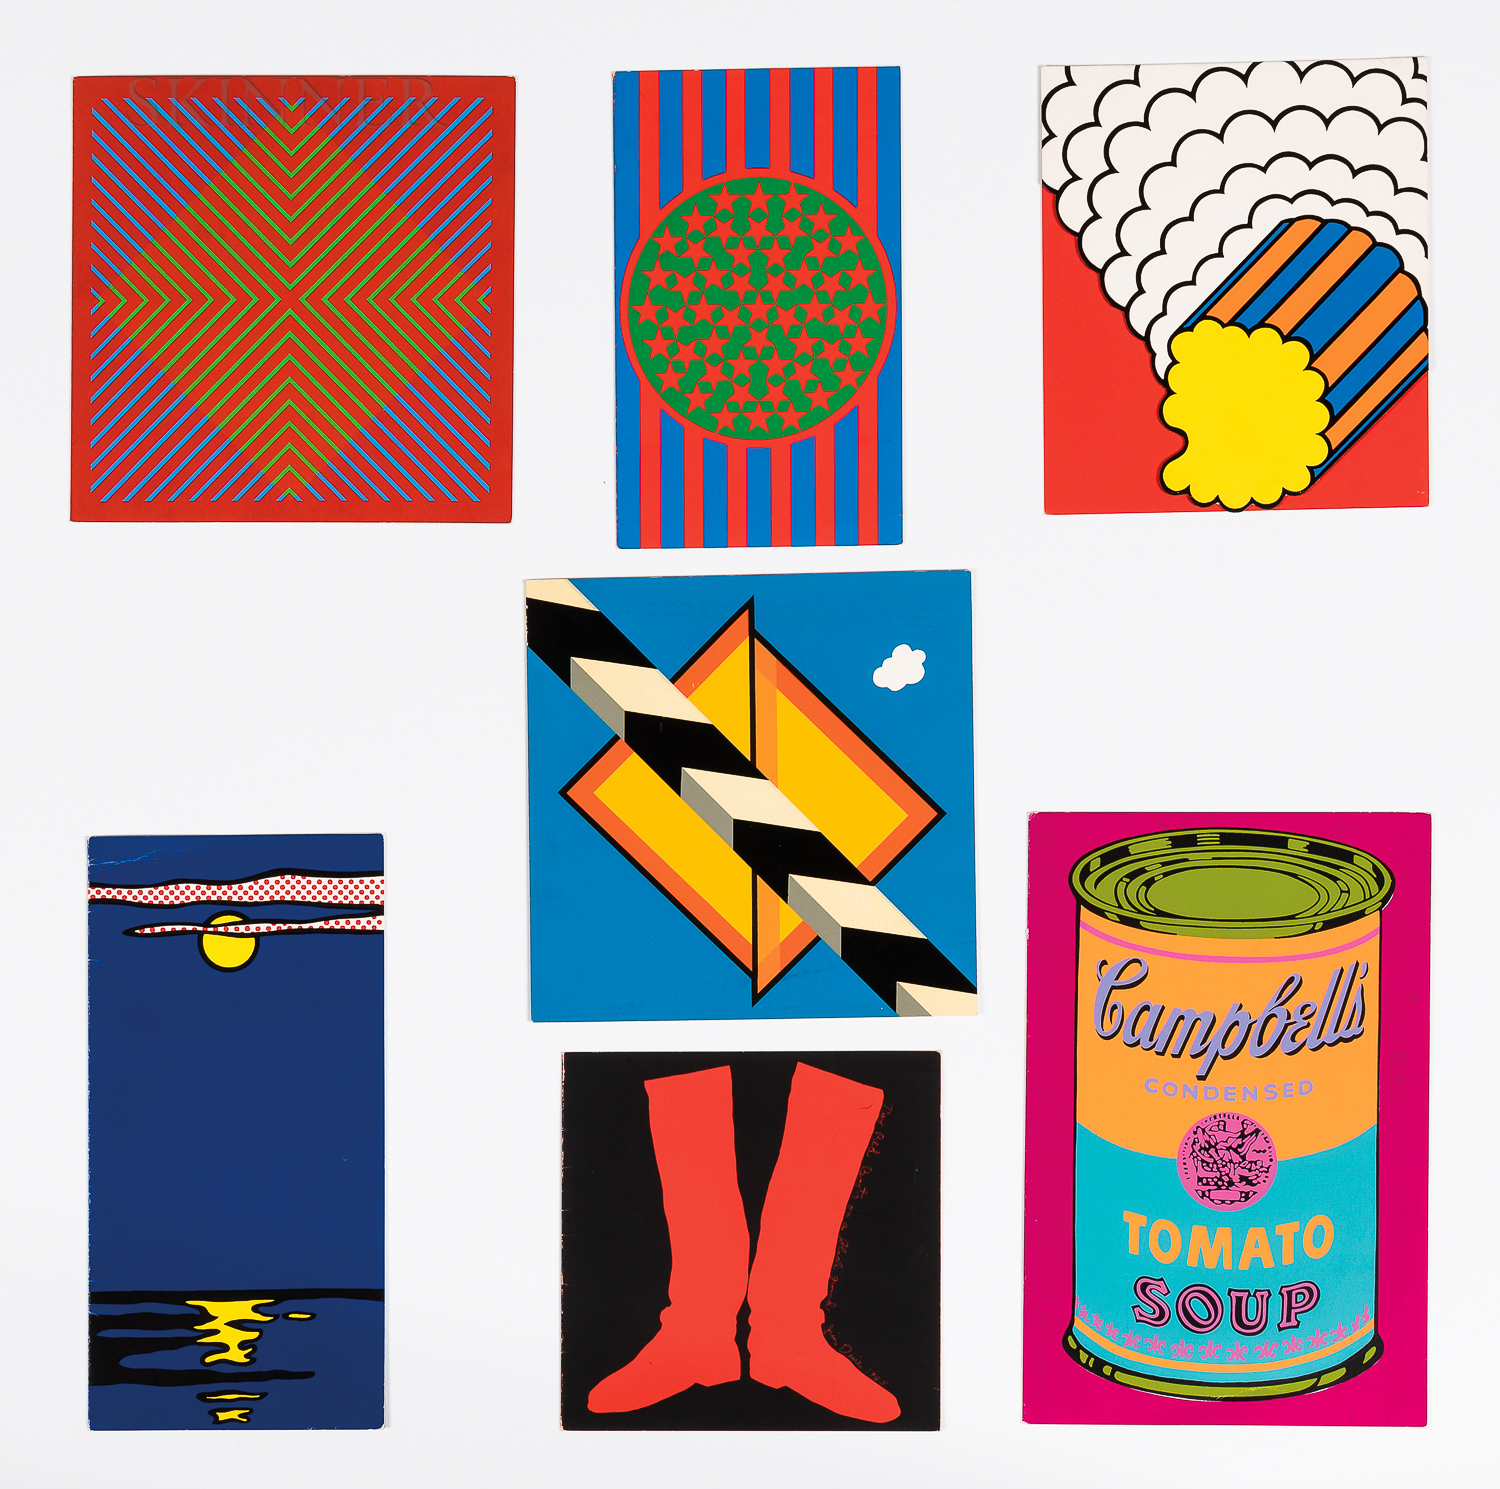 After Various Artists: Seven Greeting Cards from Banner: Richard Anuszkiewicz (American, 1930-2020), Untitled; Allan DArcangelo (Ameri